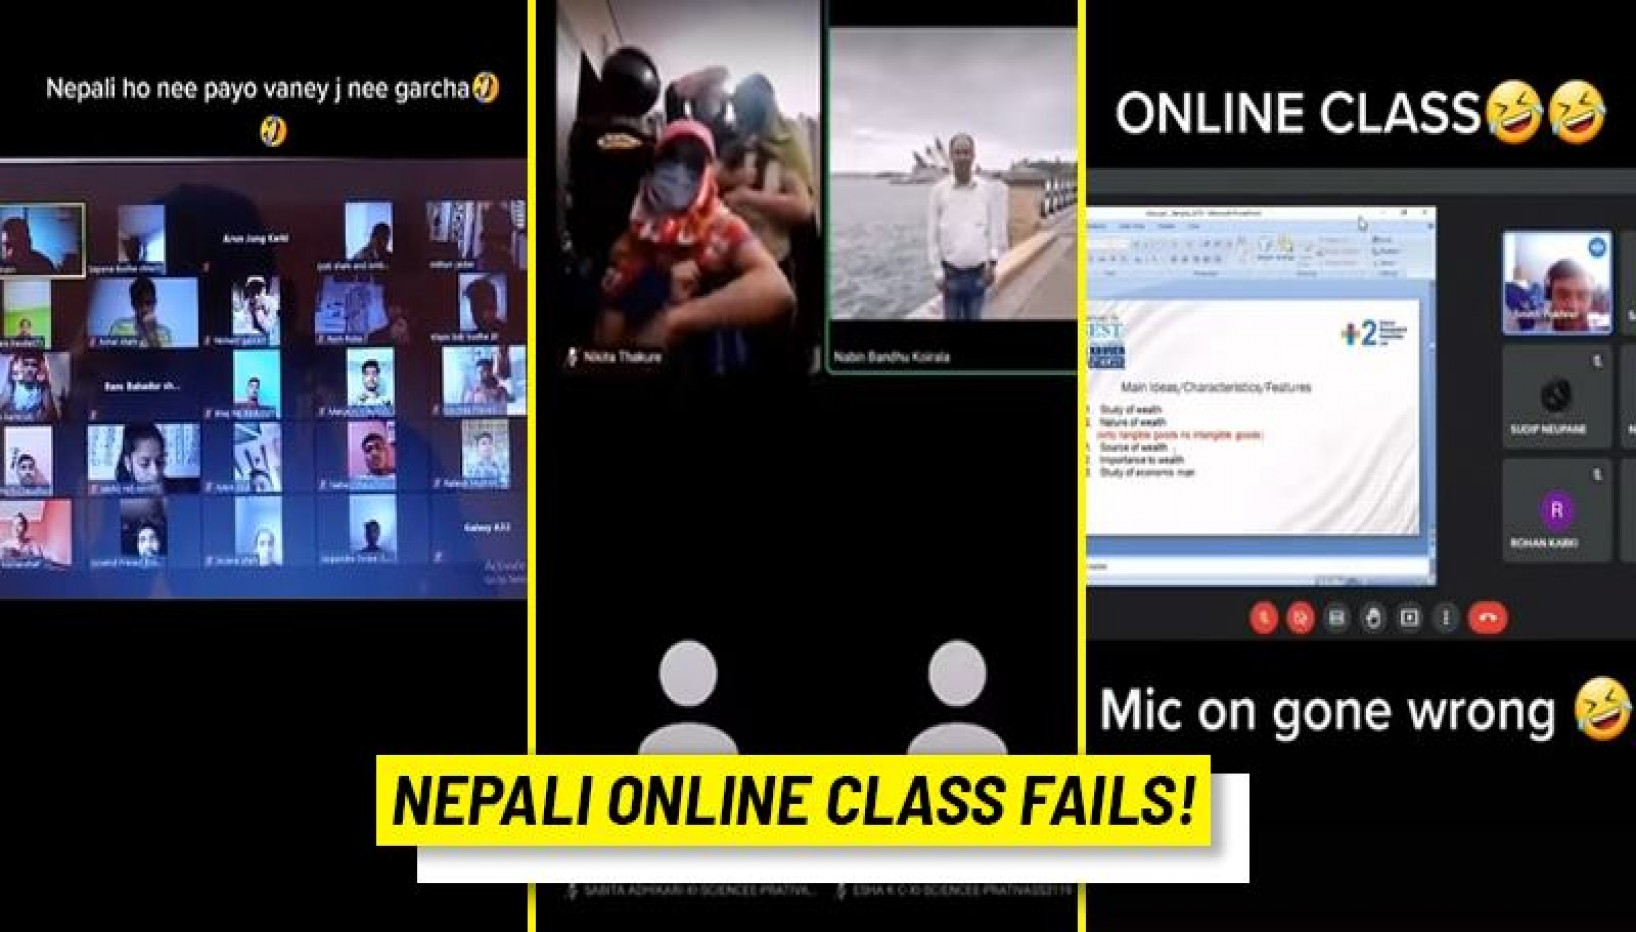 What Goes On In Nepali Online Classes? Here Are Some Hilarious Zoom Moments From Online Classes